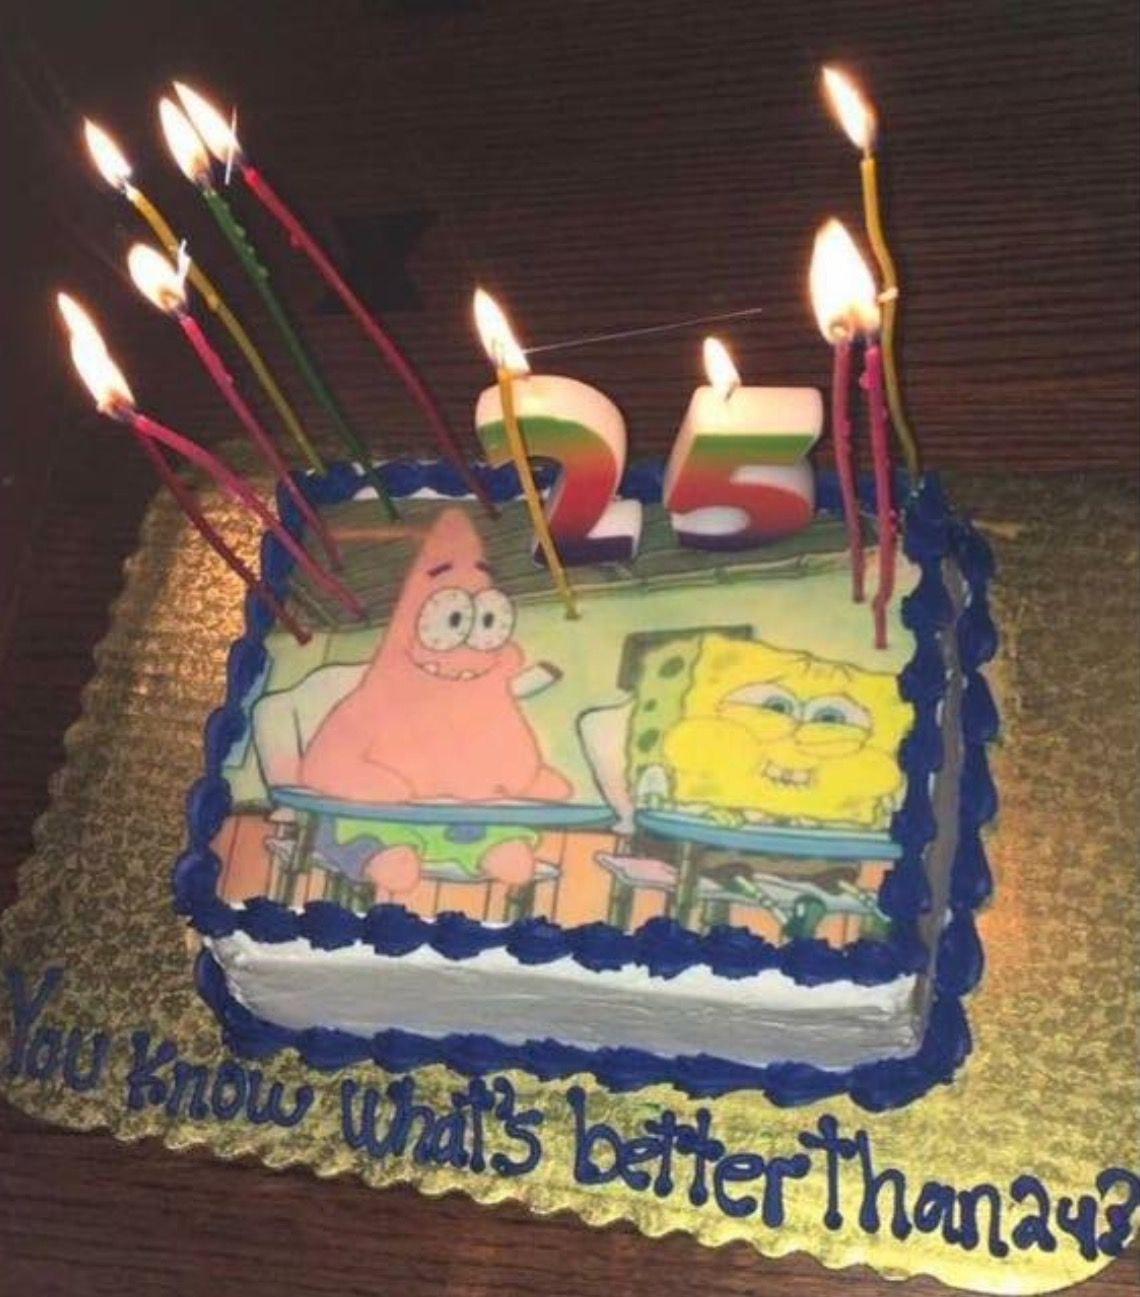 Admirable Funny Birthday Cakes For Adults 25Th Birthday Cake Spongebob Funny Birthday Cards Online Alyptdamsfinfo